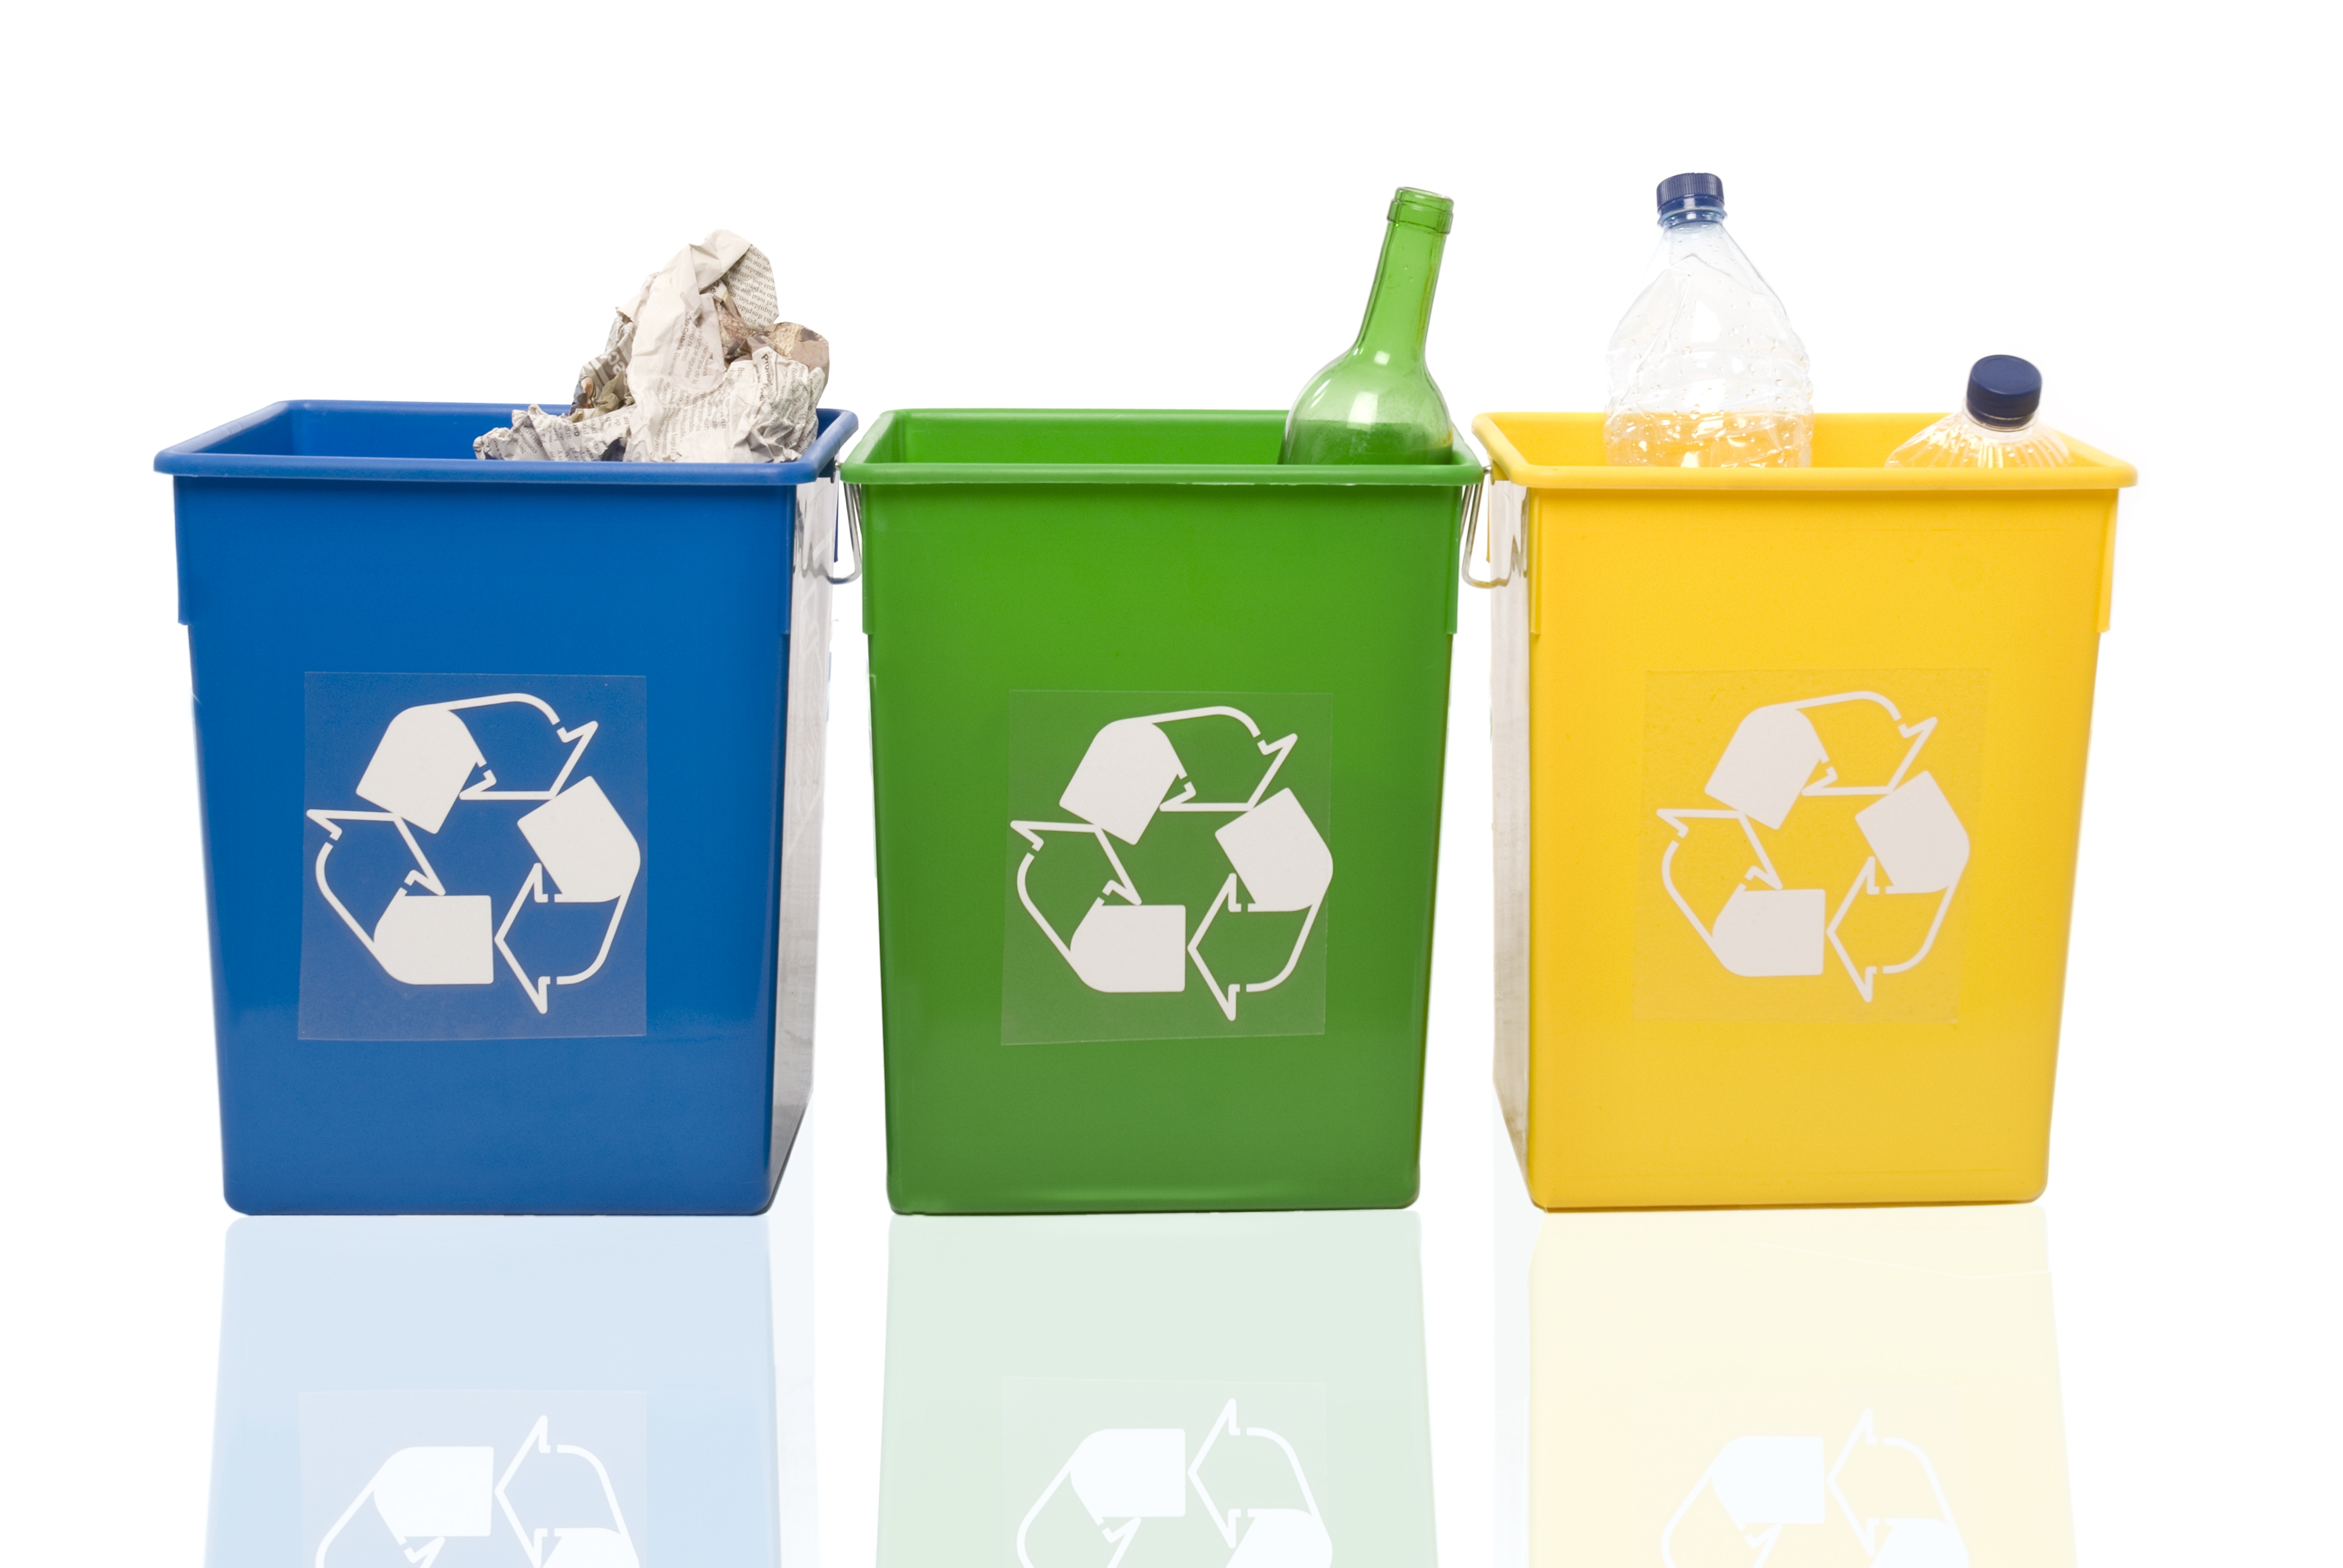 Comments of the Association Sunce on the Waste management plan